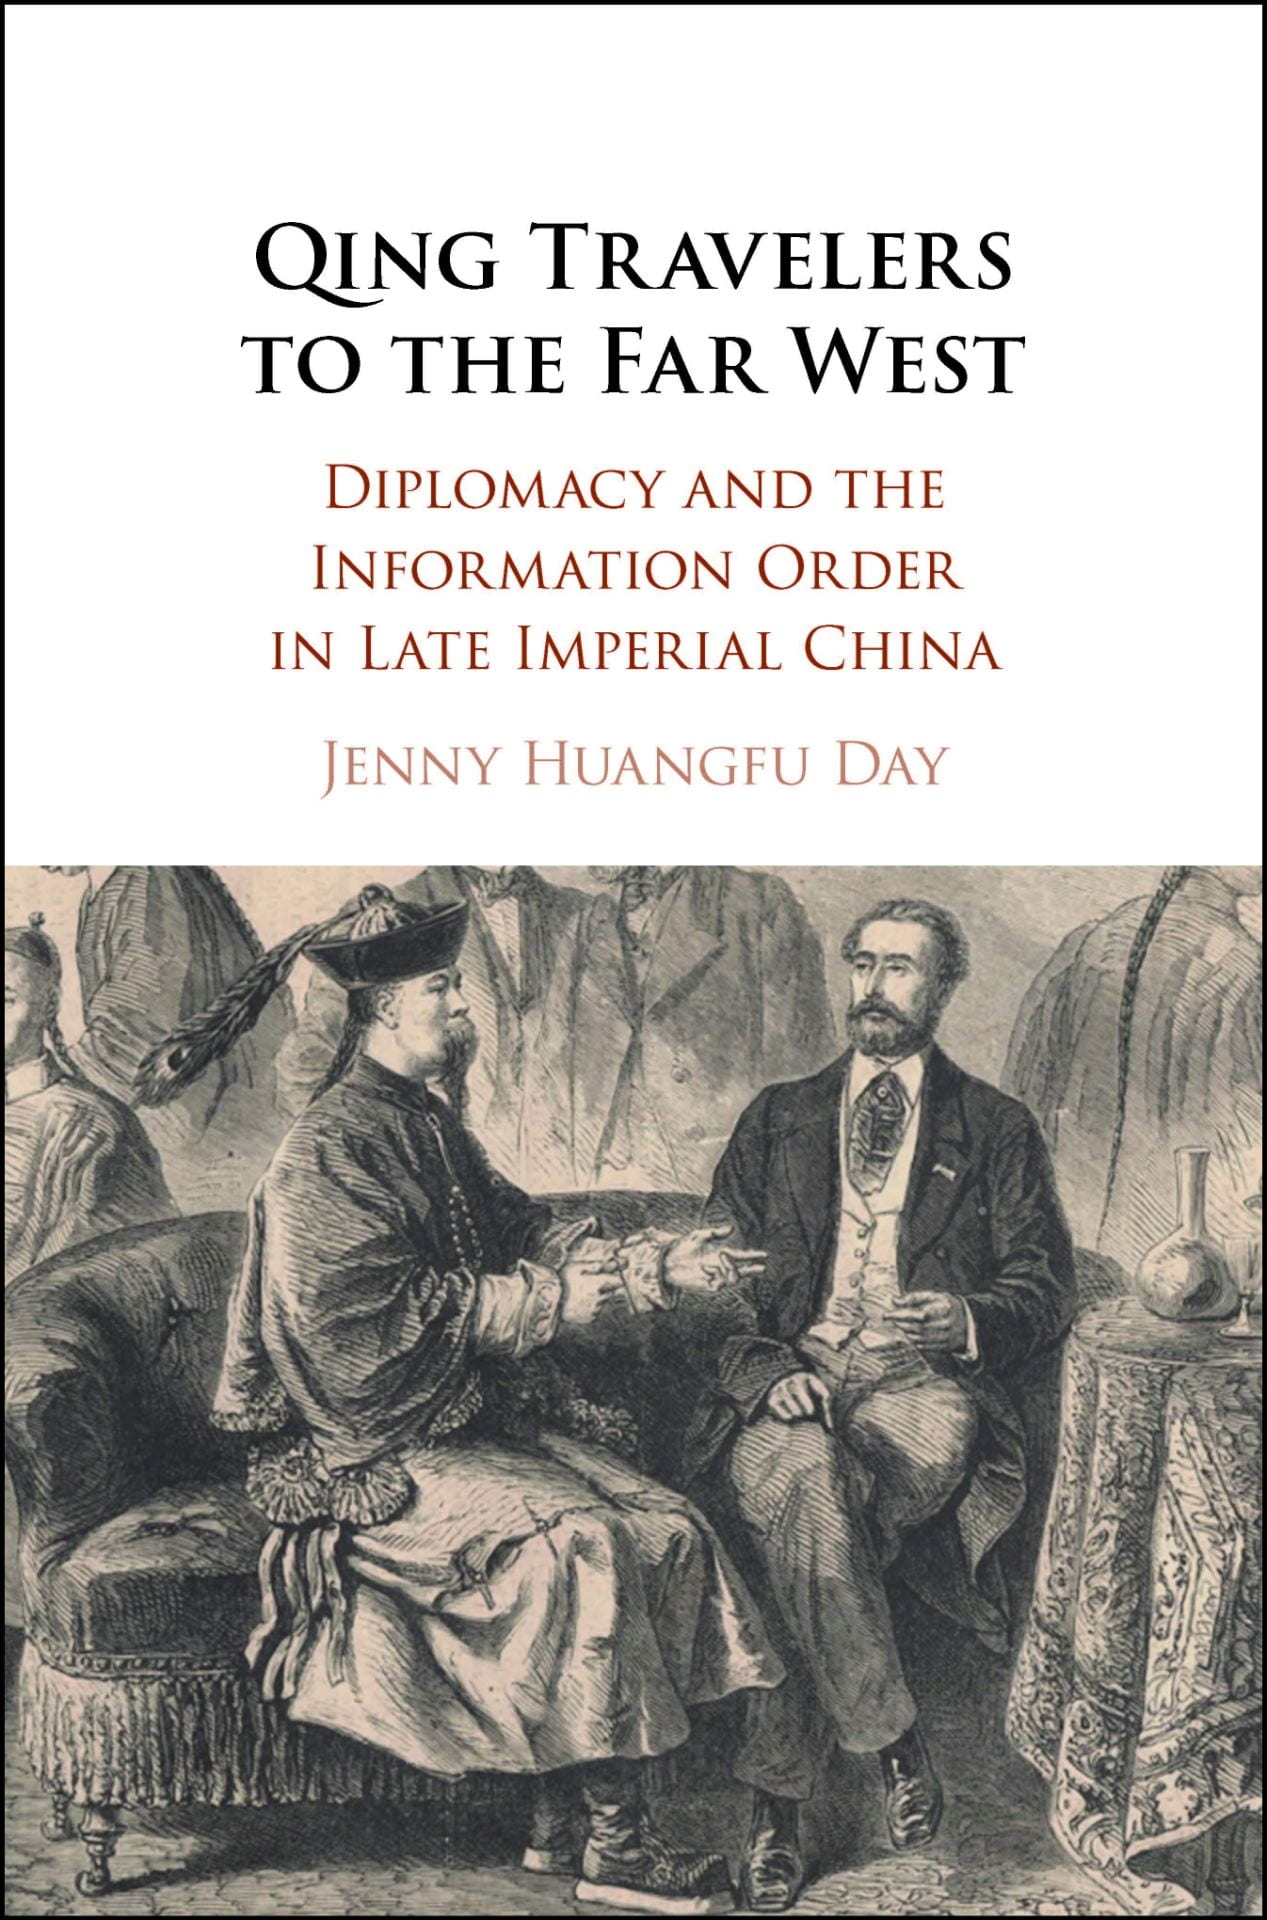 Figure 1: Cover image of 'Qing Travelers to the Far West'.